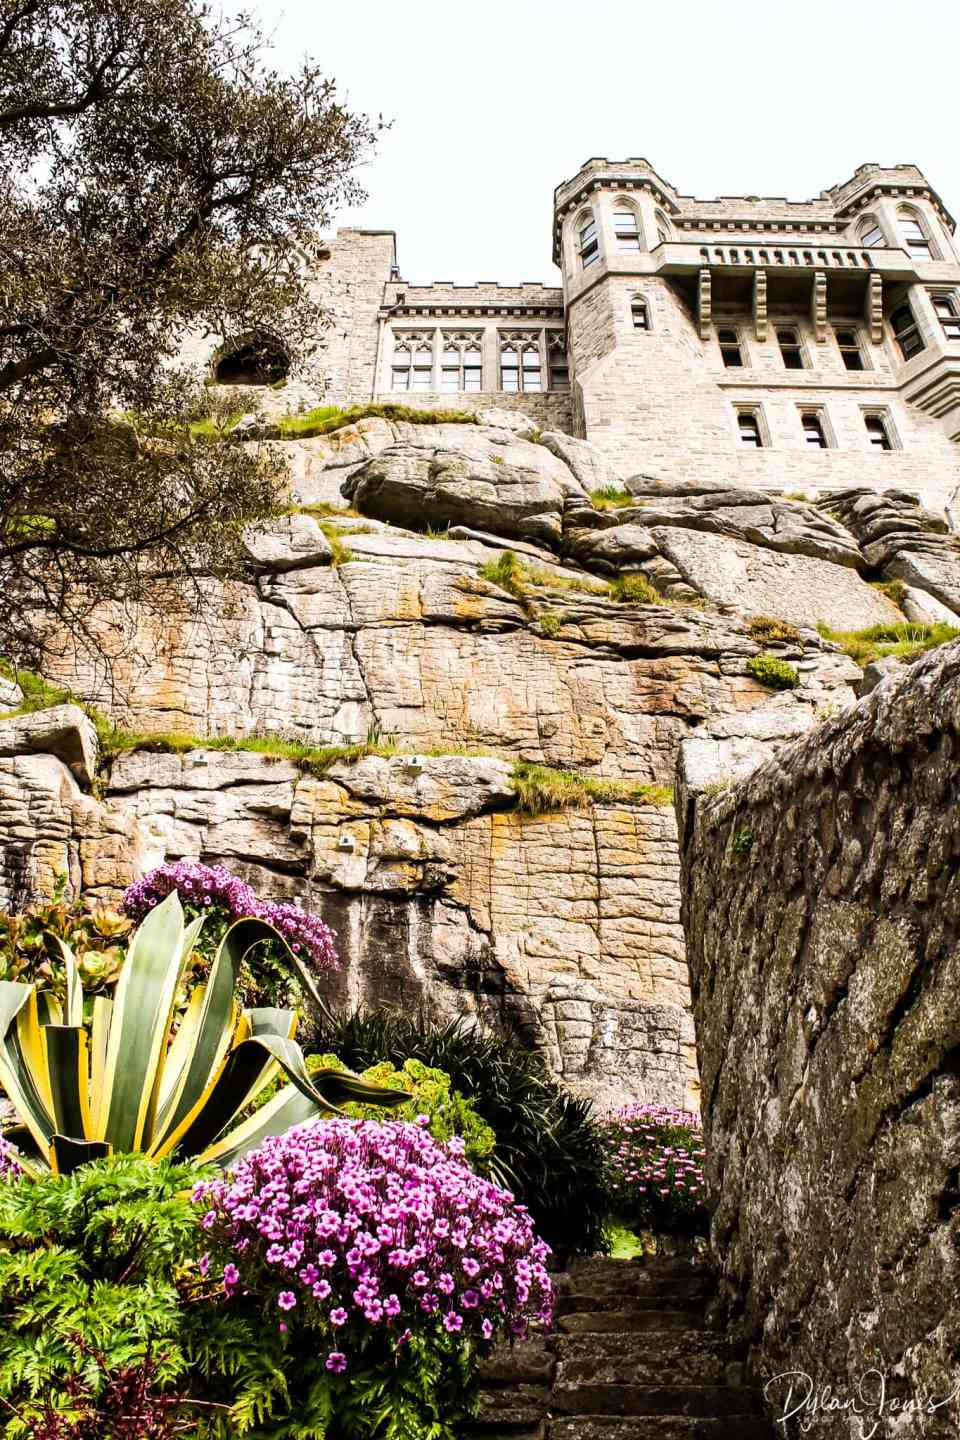 Looking up towards the castle from the terraced gardens of St. Michael's Mount, South Cornwall coast